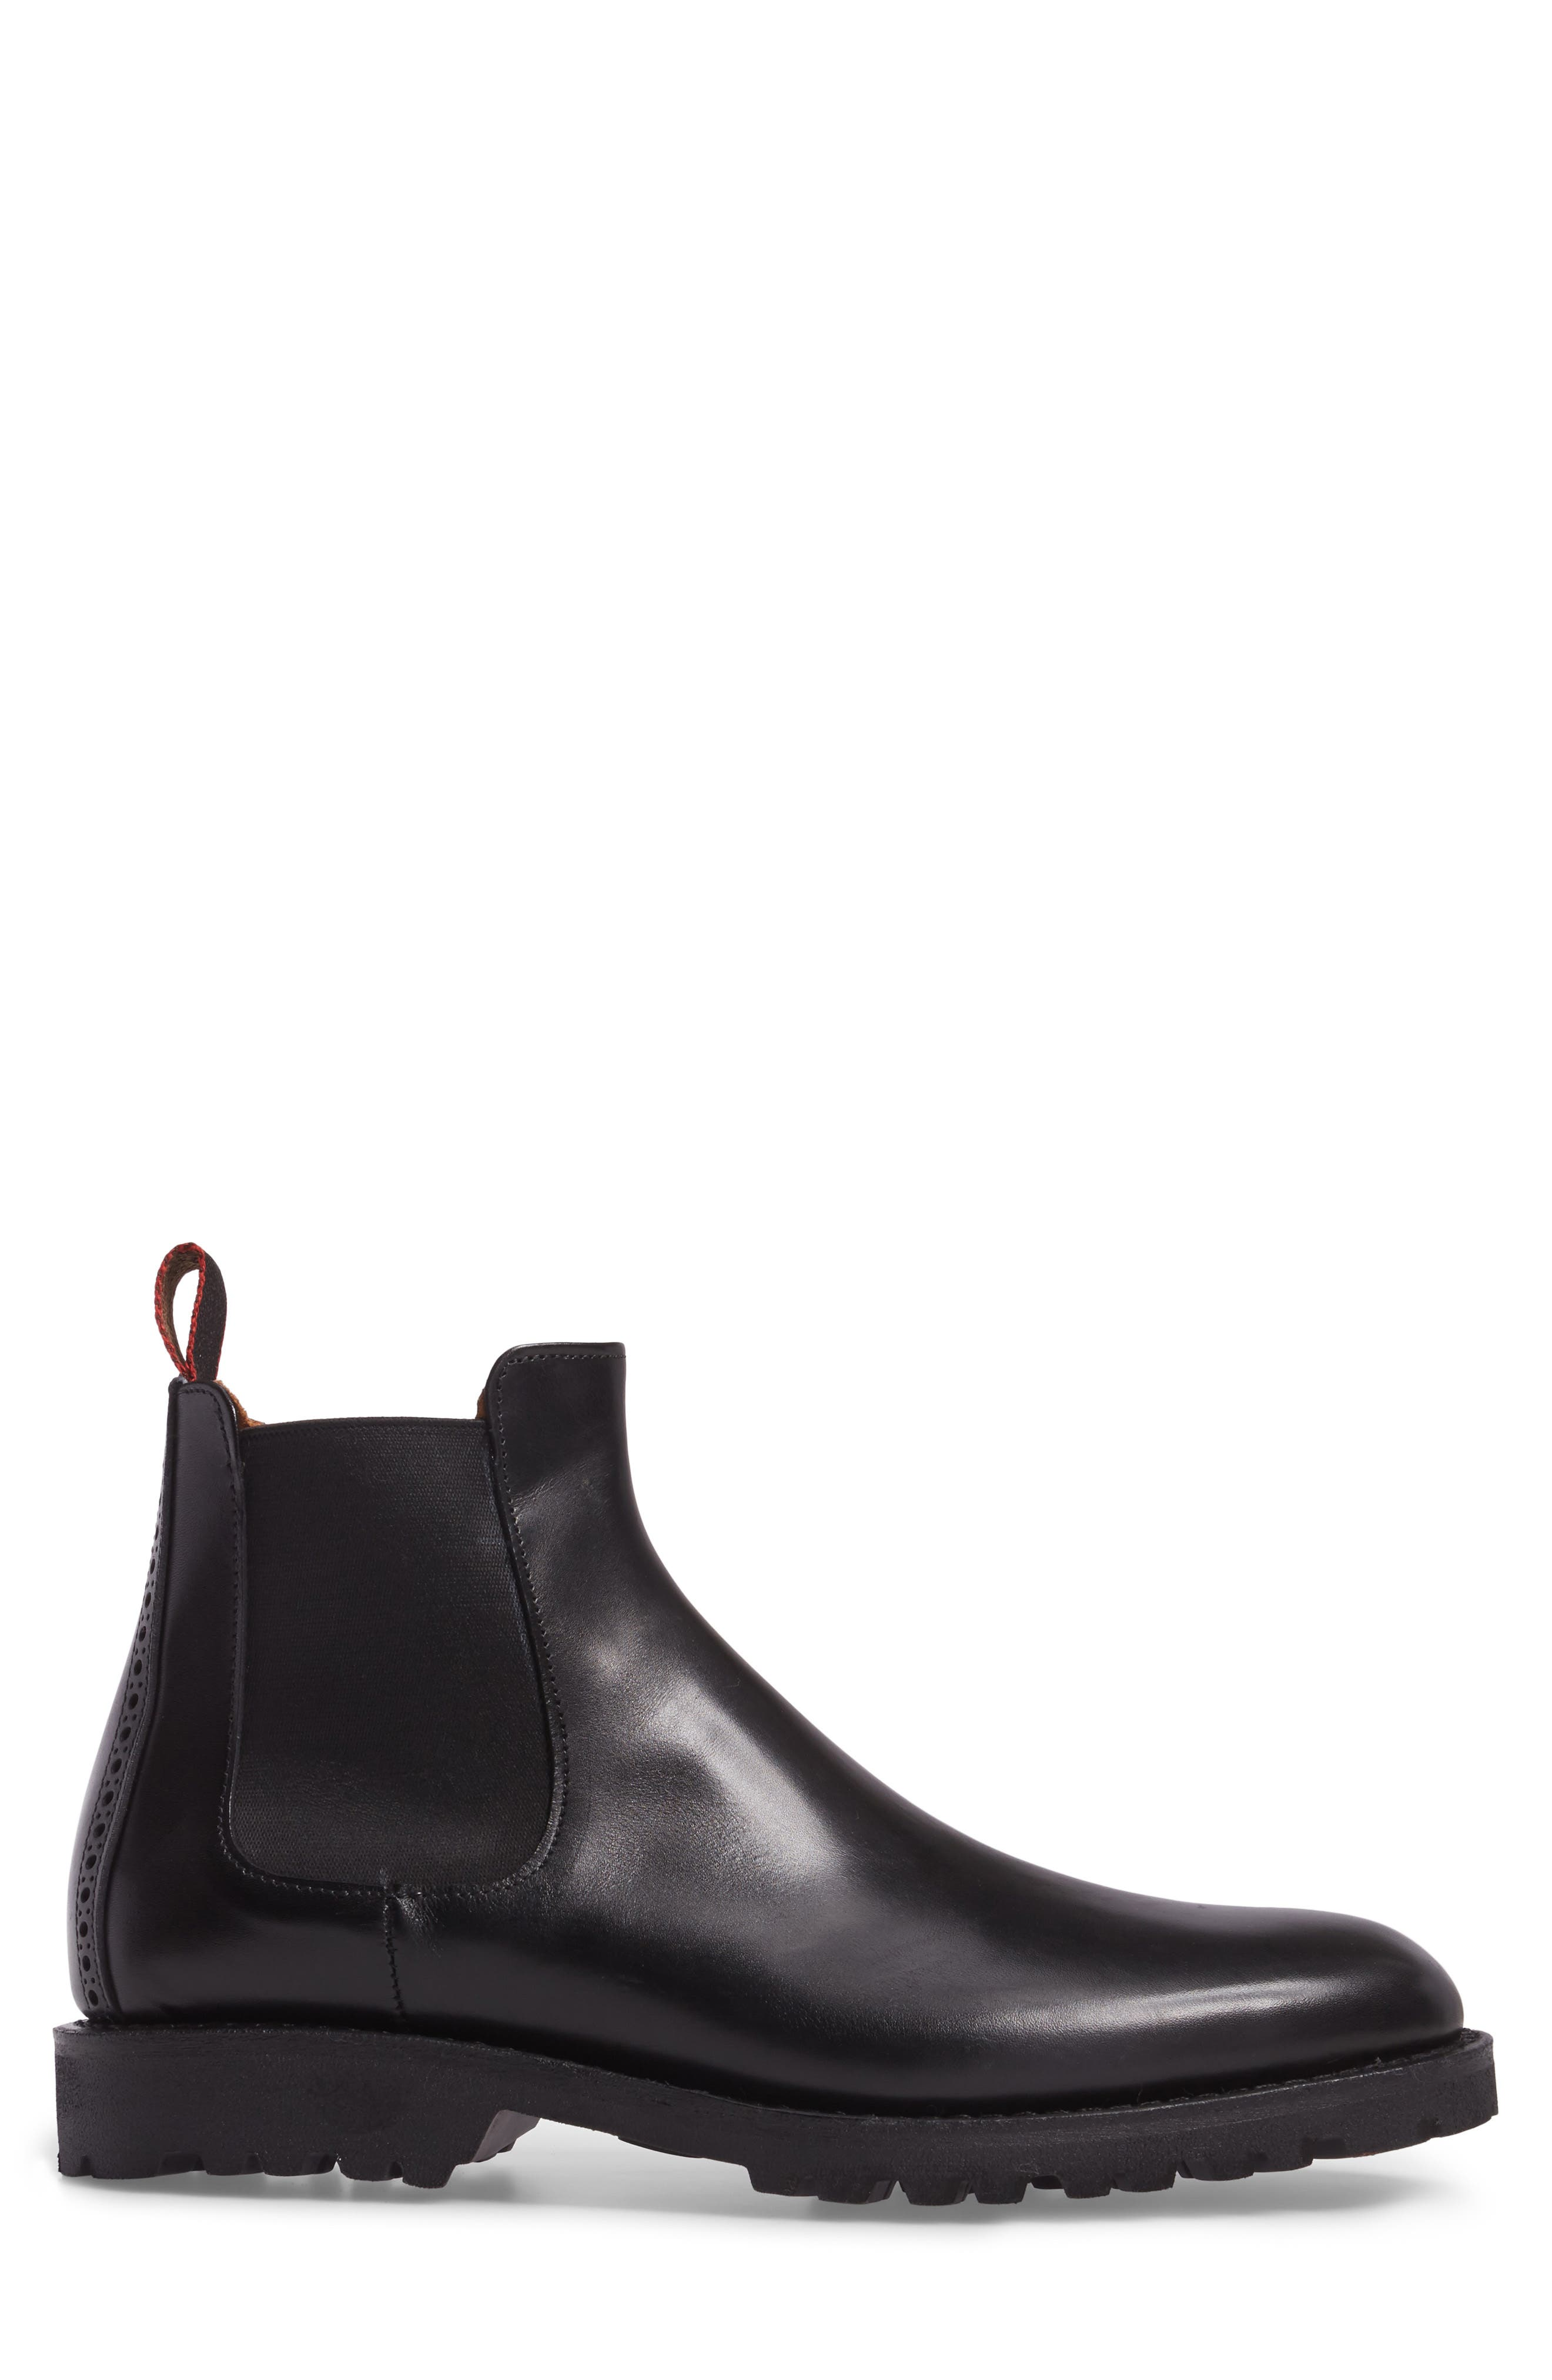 Tate Chelsea Boot,                             Alternate thumbnail 3, color,                             001